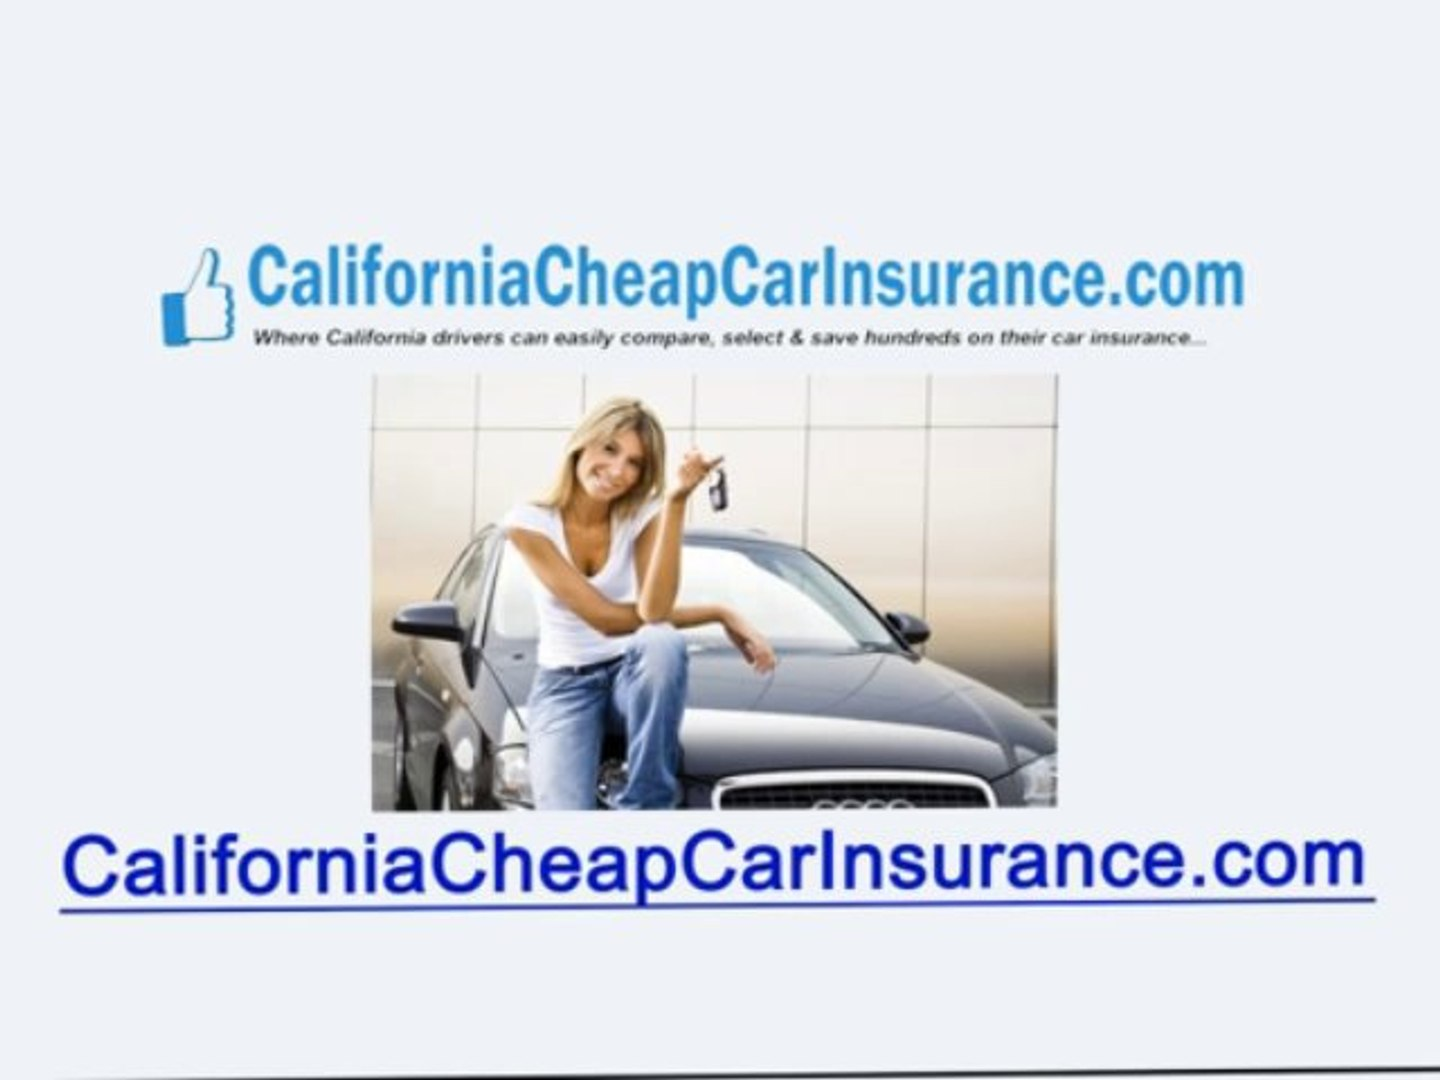 Auto Insurance In California - Discount Insurers Allow Many Drivers To Cut Rates By up to Half-Price